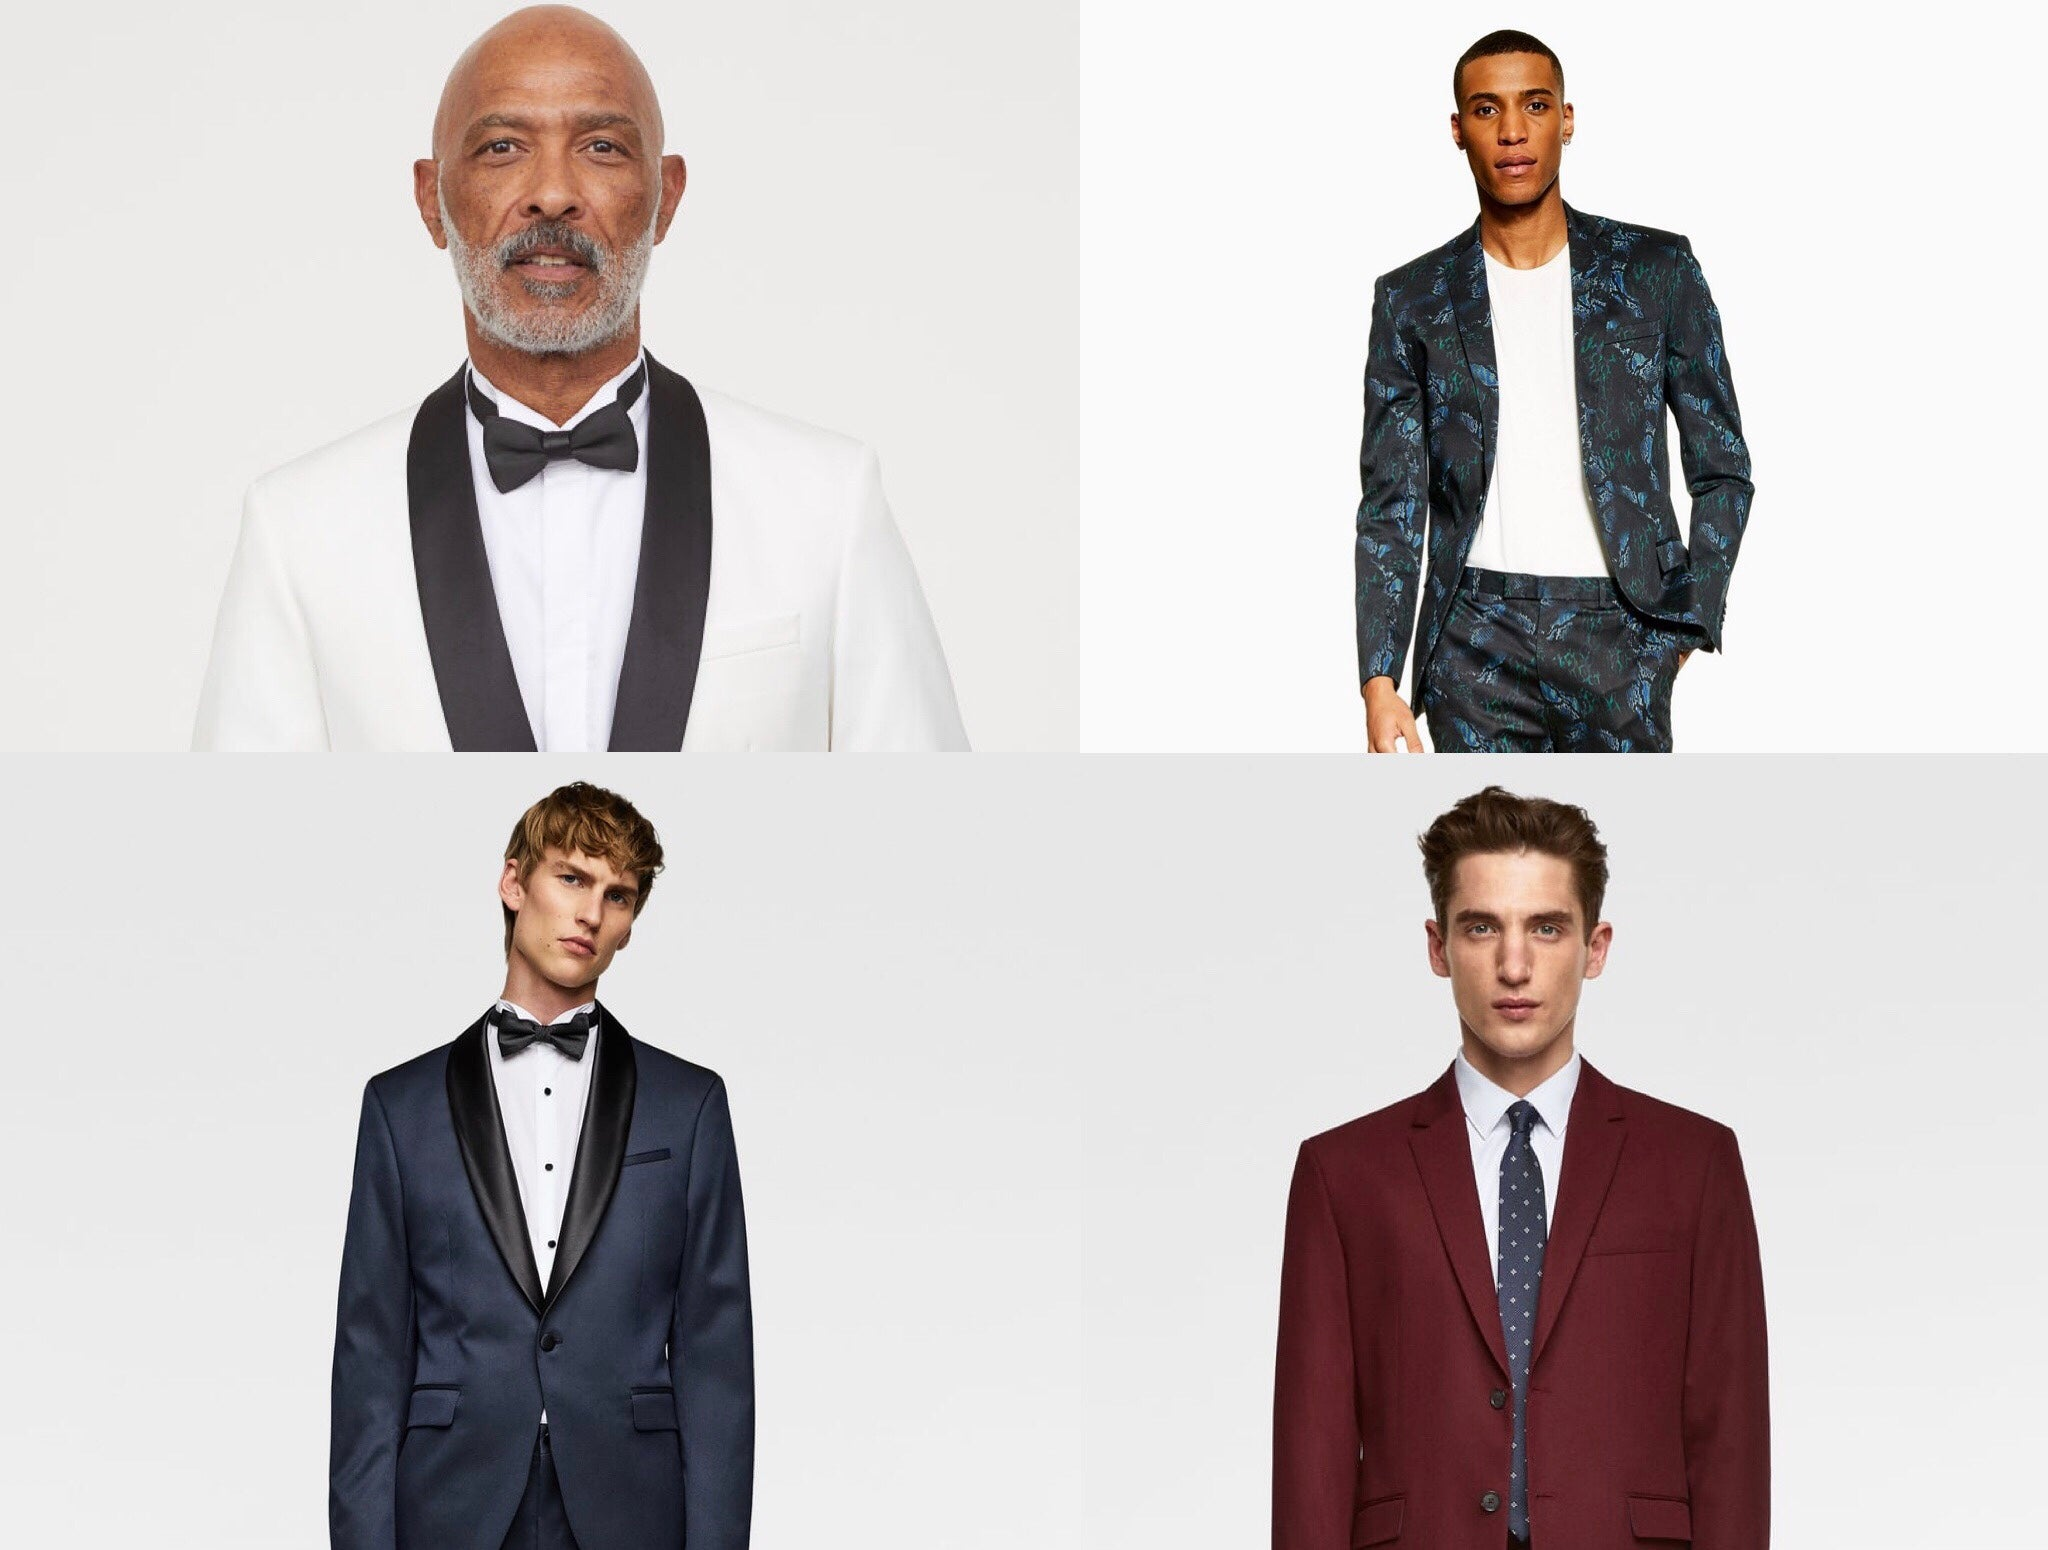 4 images of male models in various tuxedos throughout the article